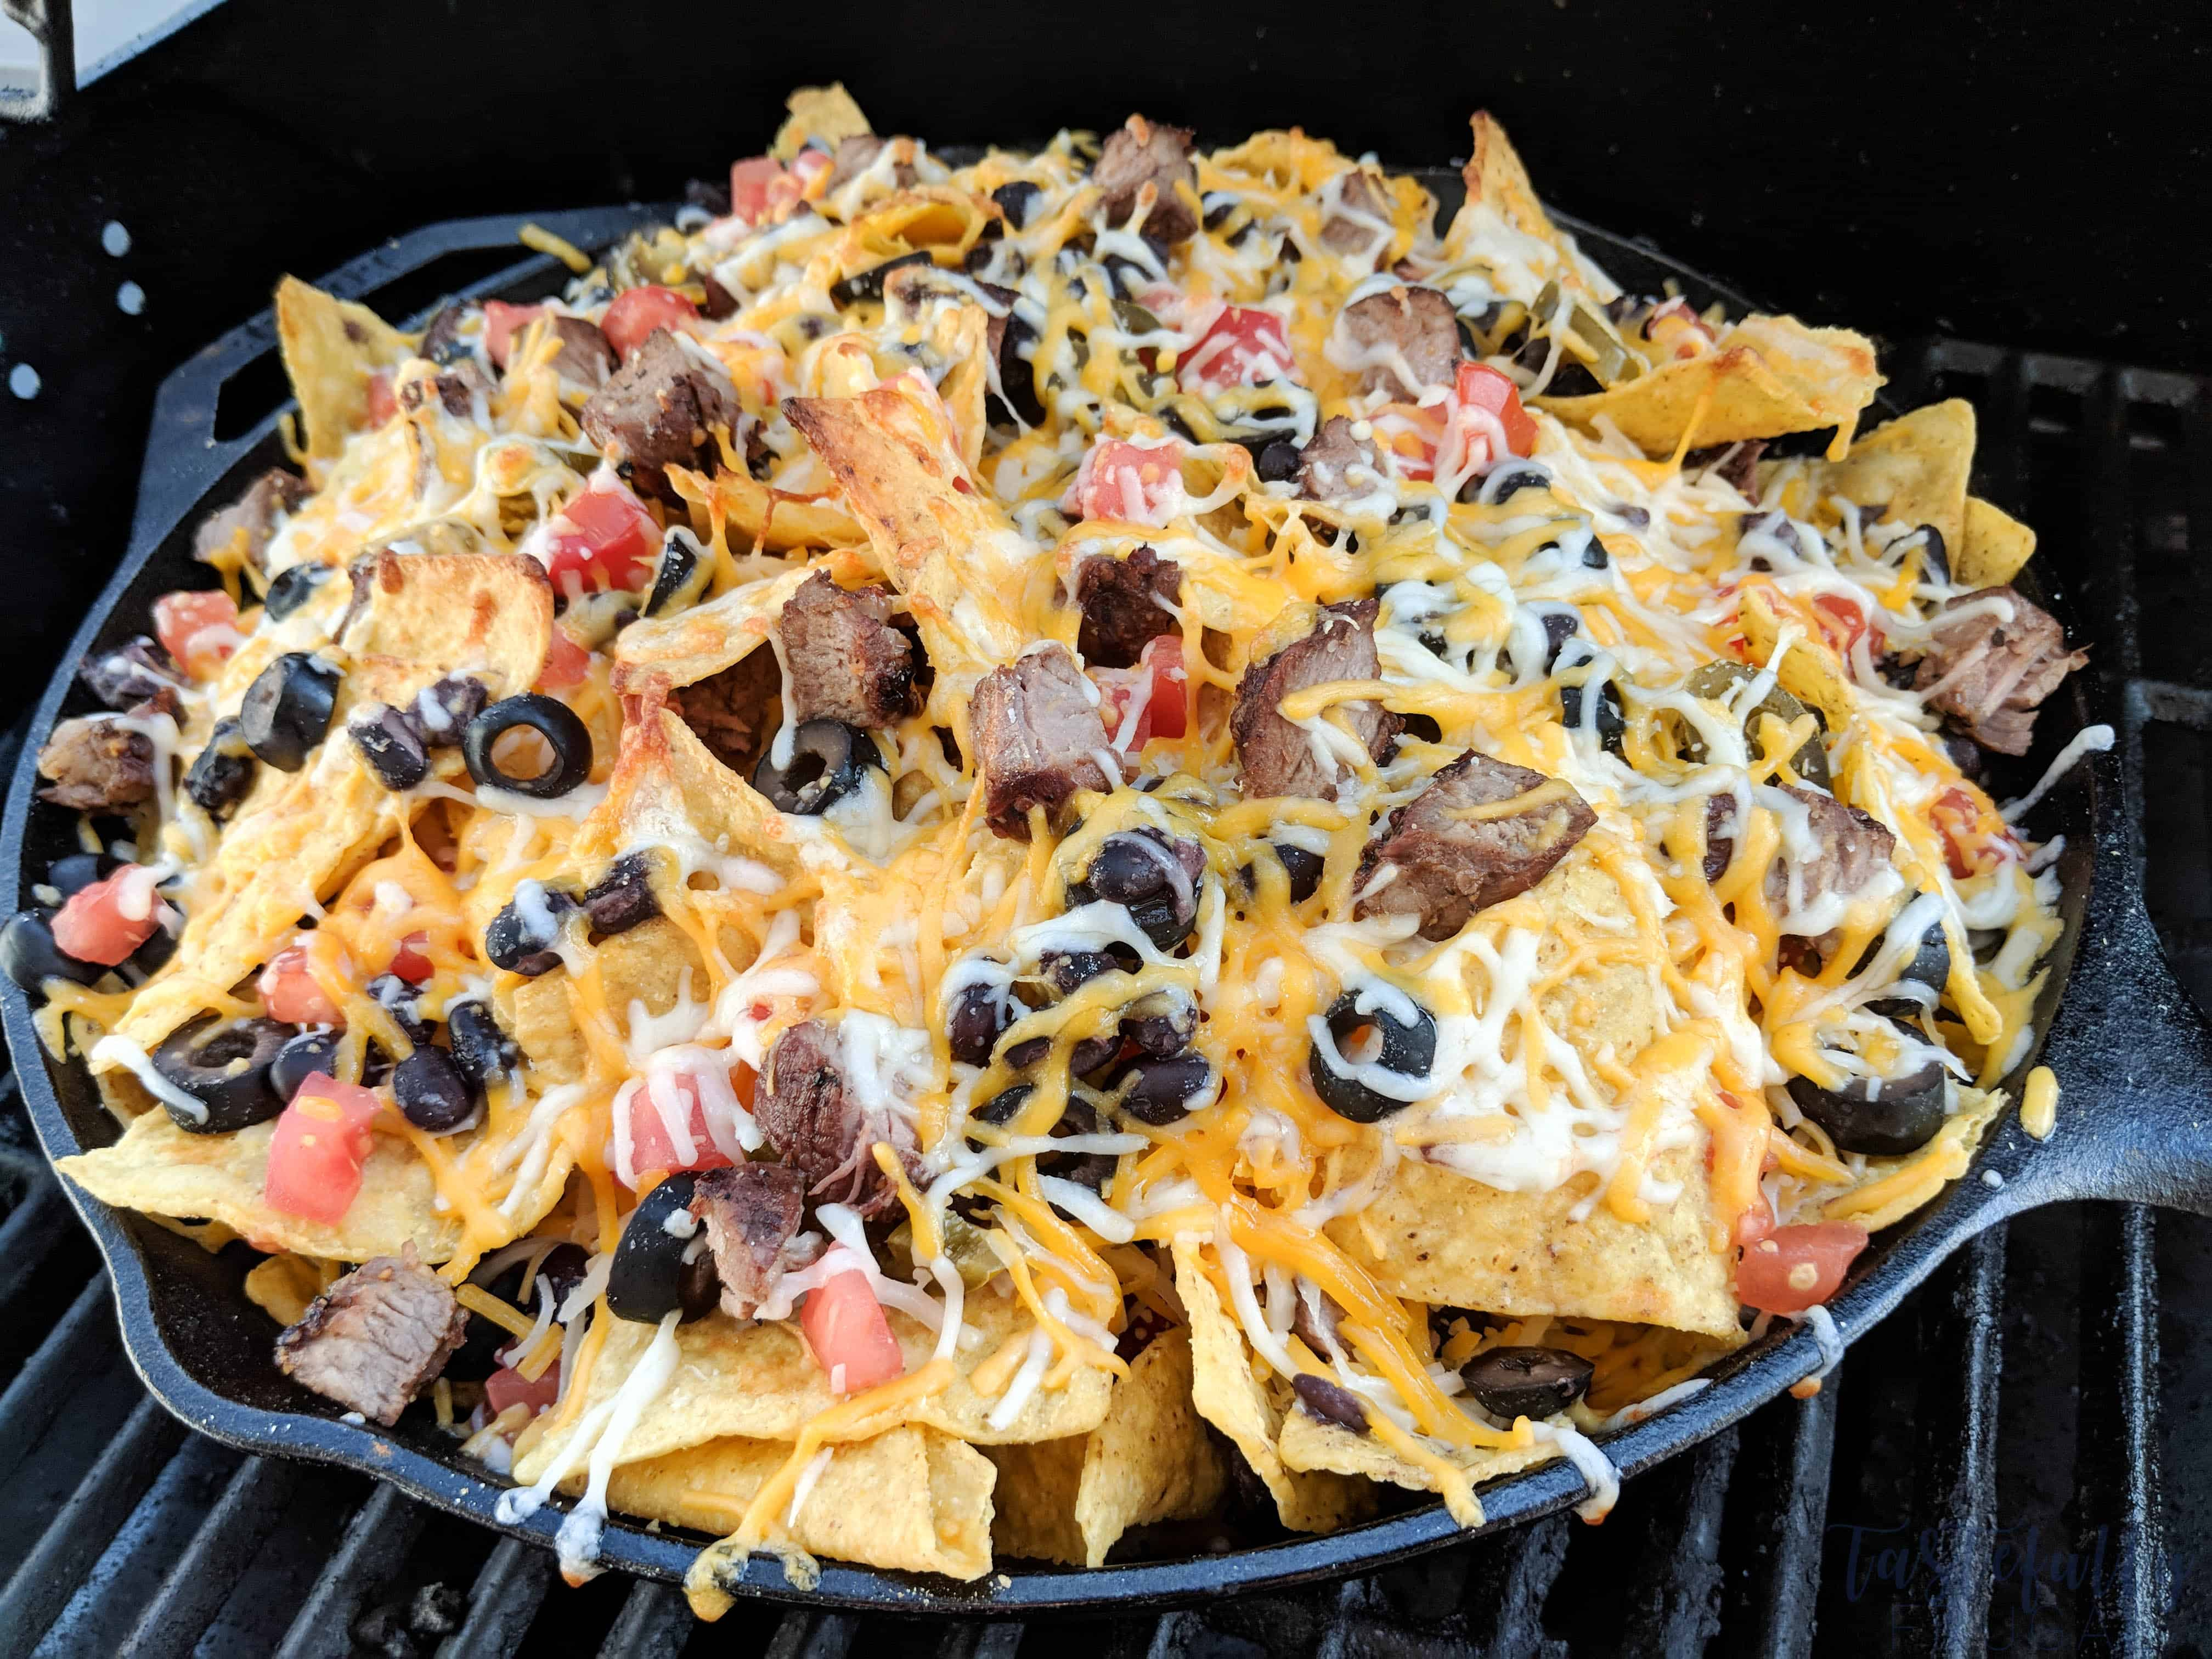 This easy nachos recipe is the perfect addition to any tailgate or football party!